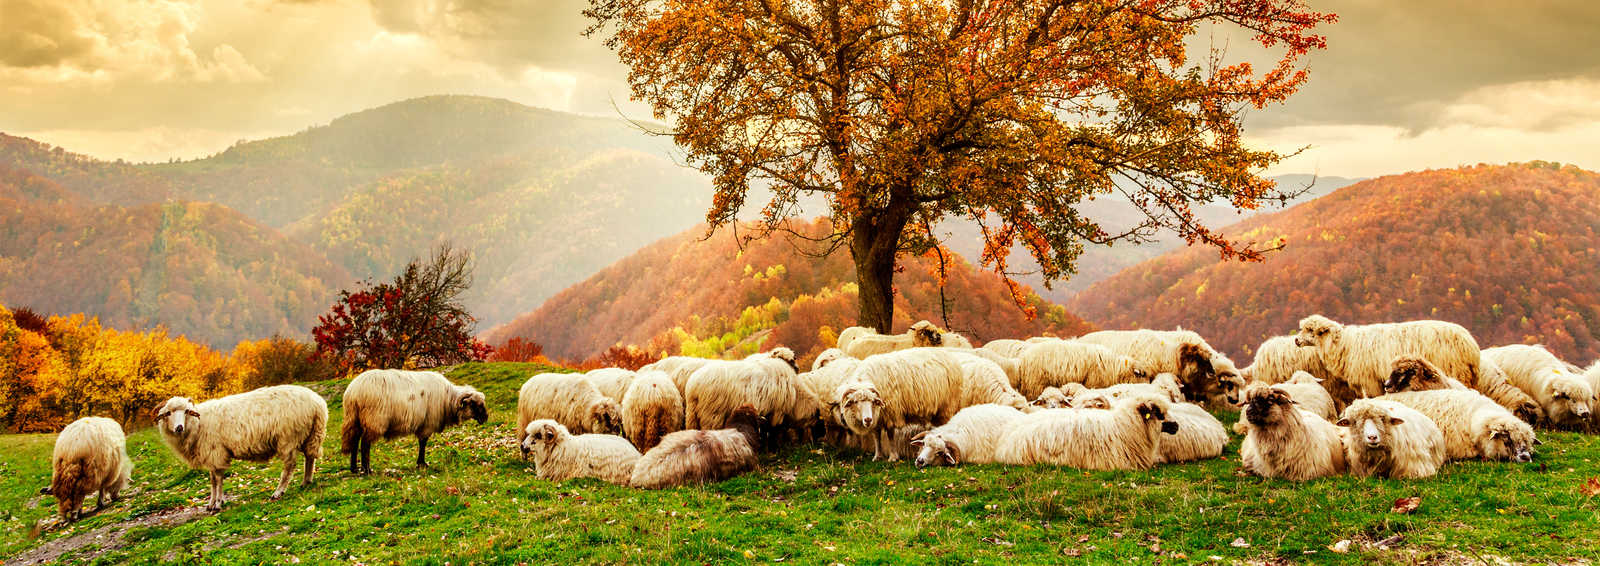 Flock of sheep in the Carpathian Mountains, Romania